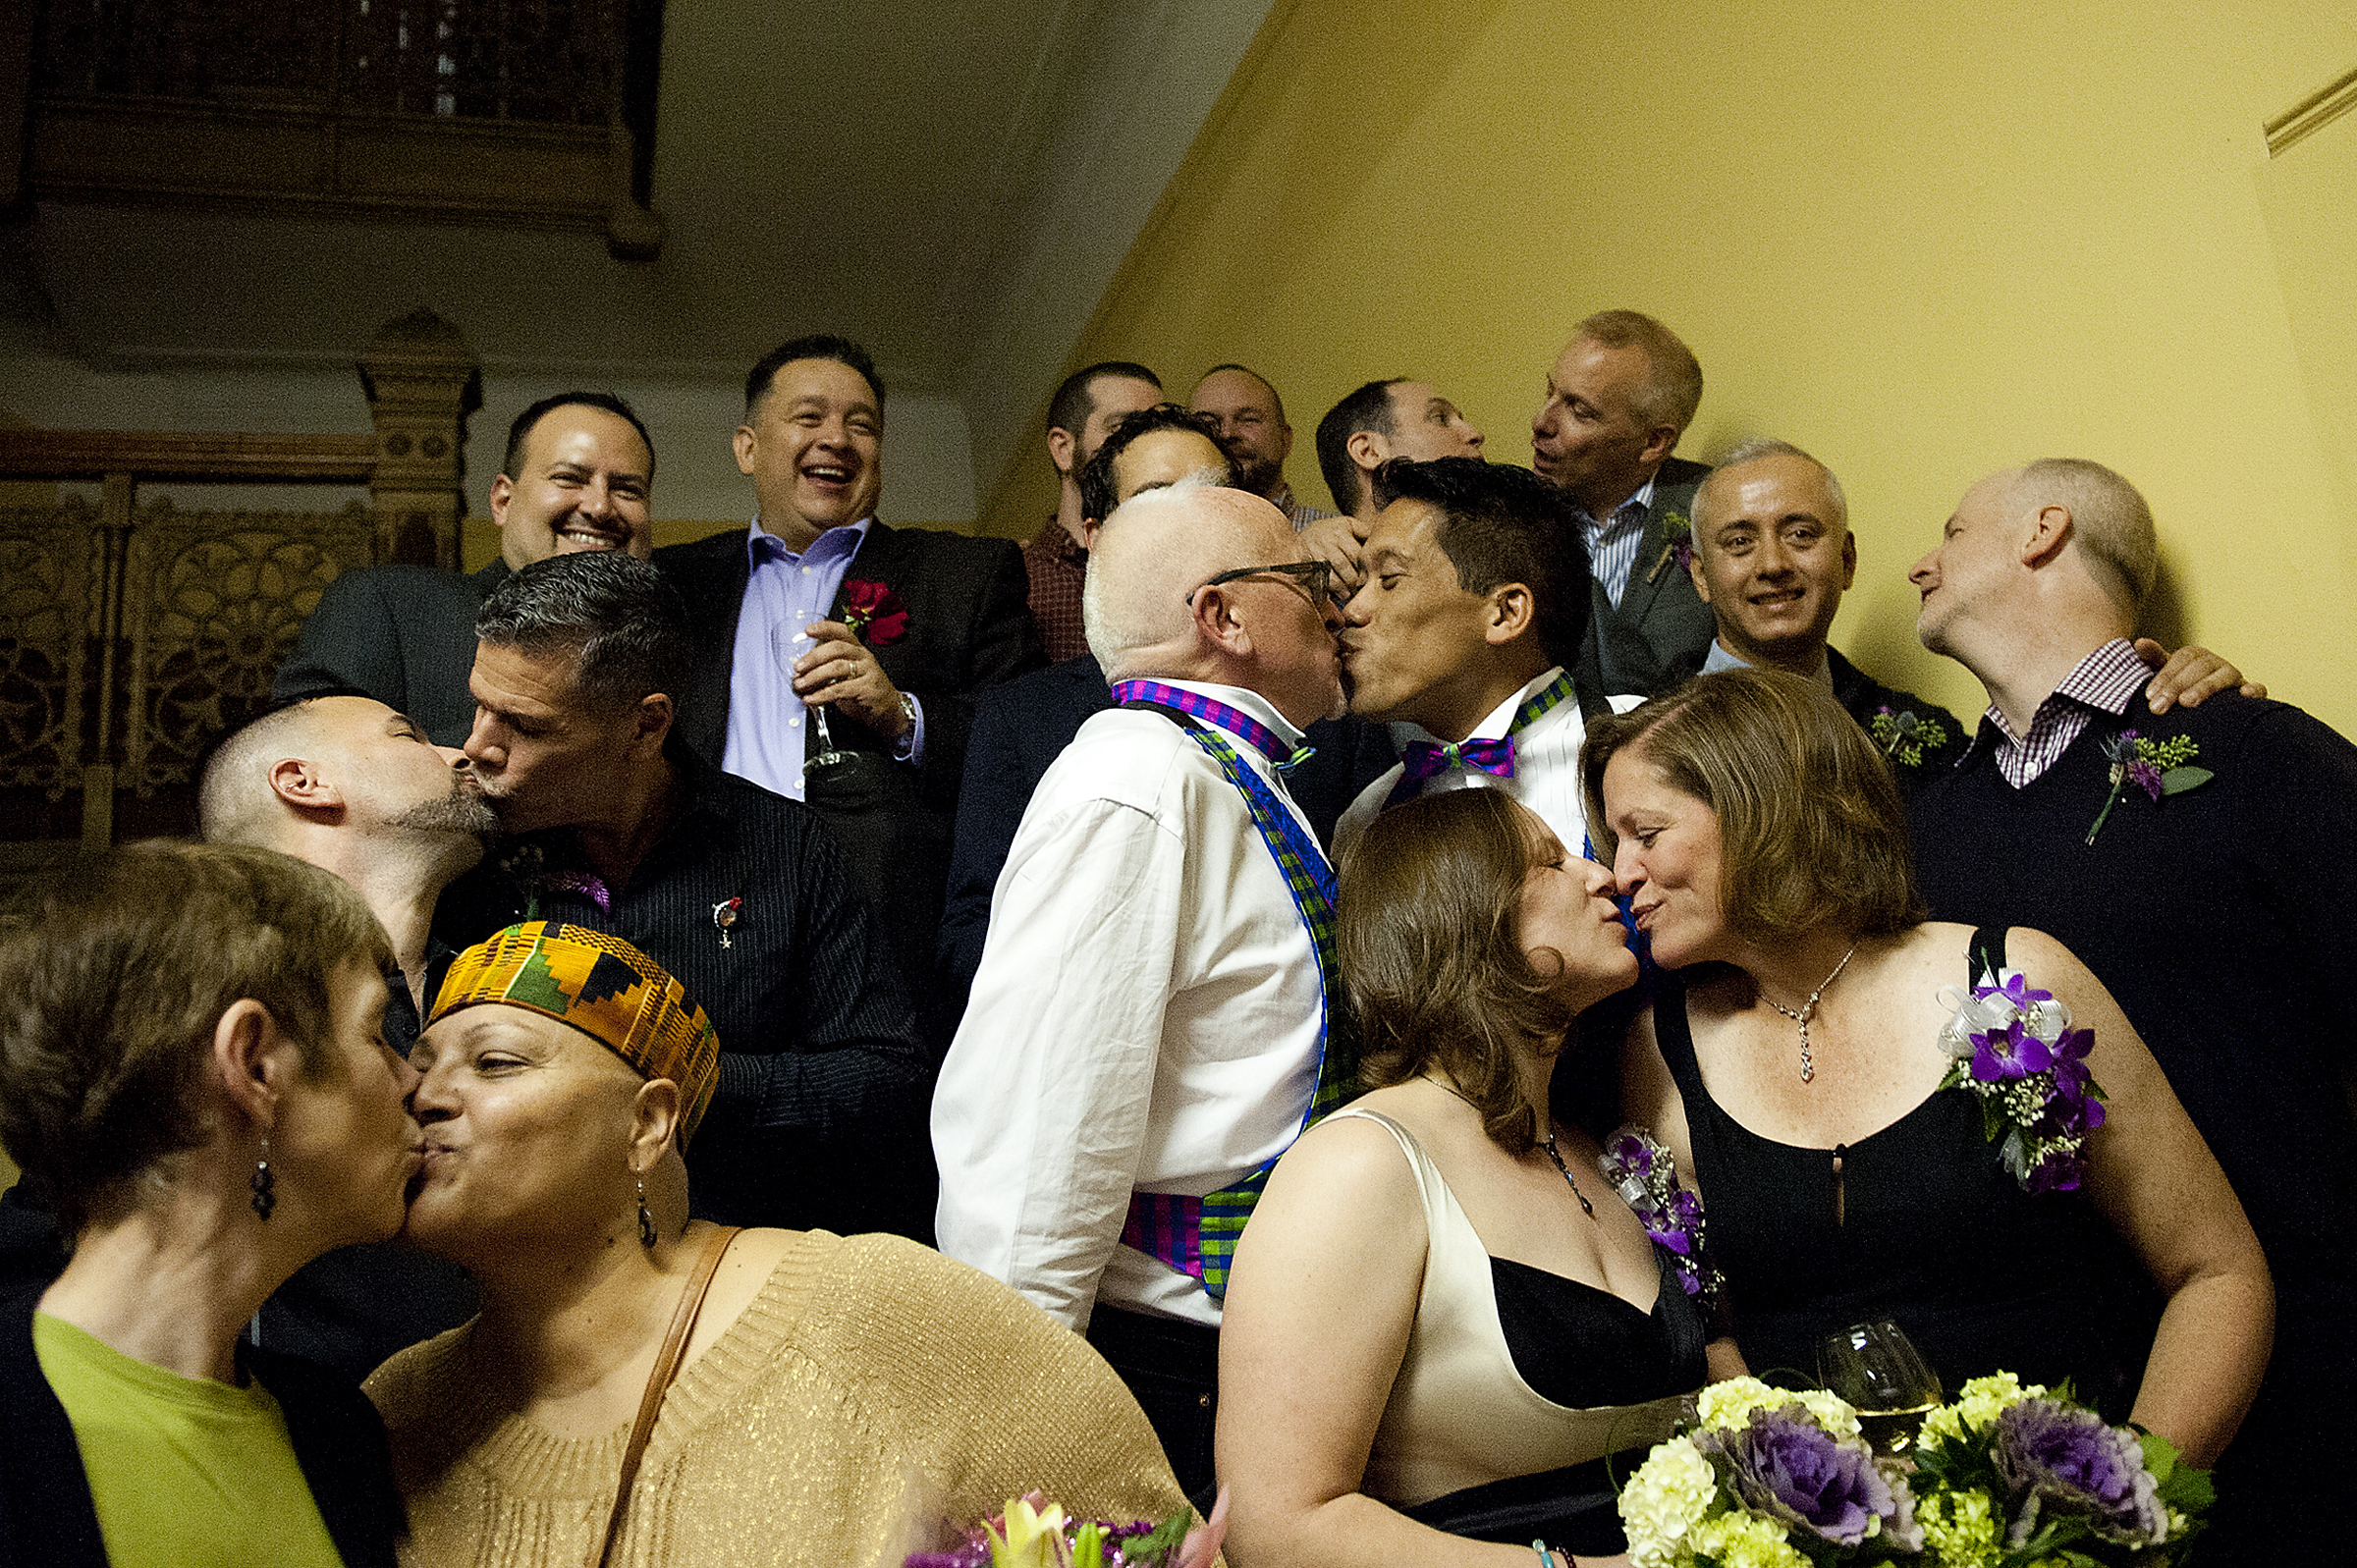 why gay marriage bad Legalizing gay marriage will have no negative impact on religion and/ or the religious view of others, just as religion should not have any impact on the issue of gay marriage 7 it's an issue of equal rights.